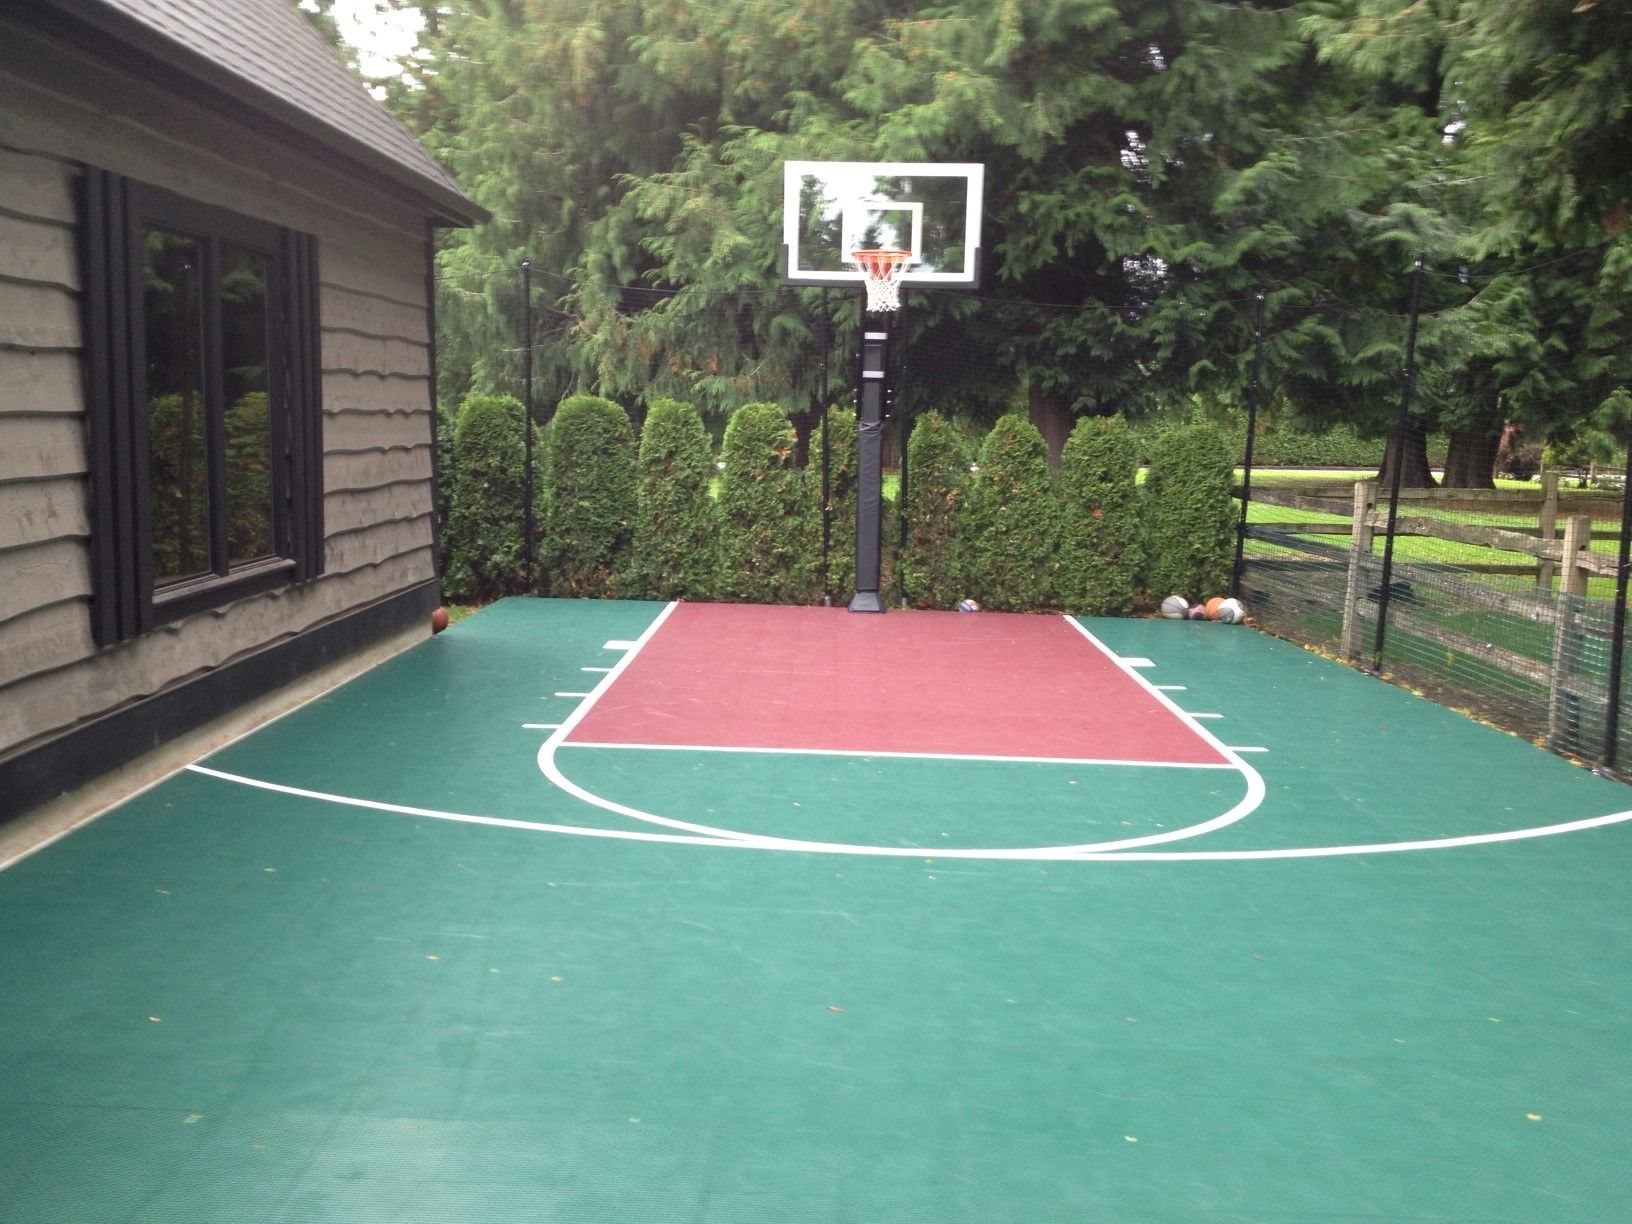 this custom teal colored court is home to a pro dunk gold basketball